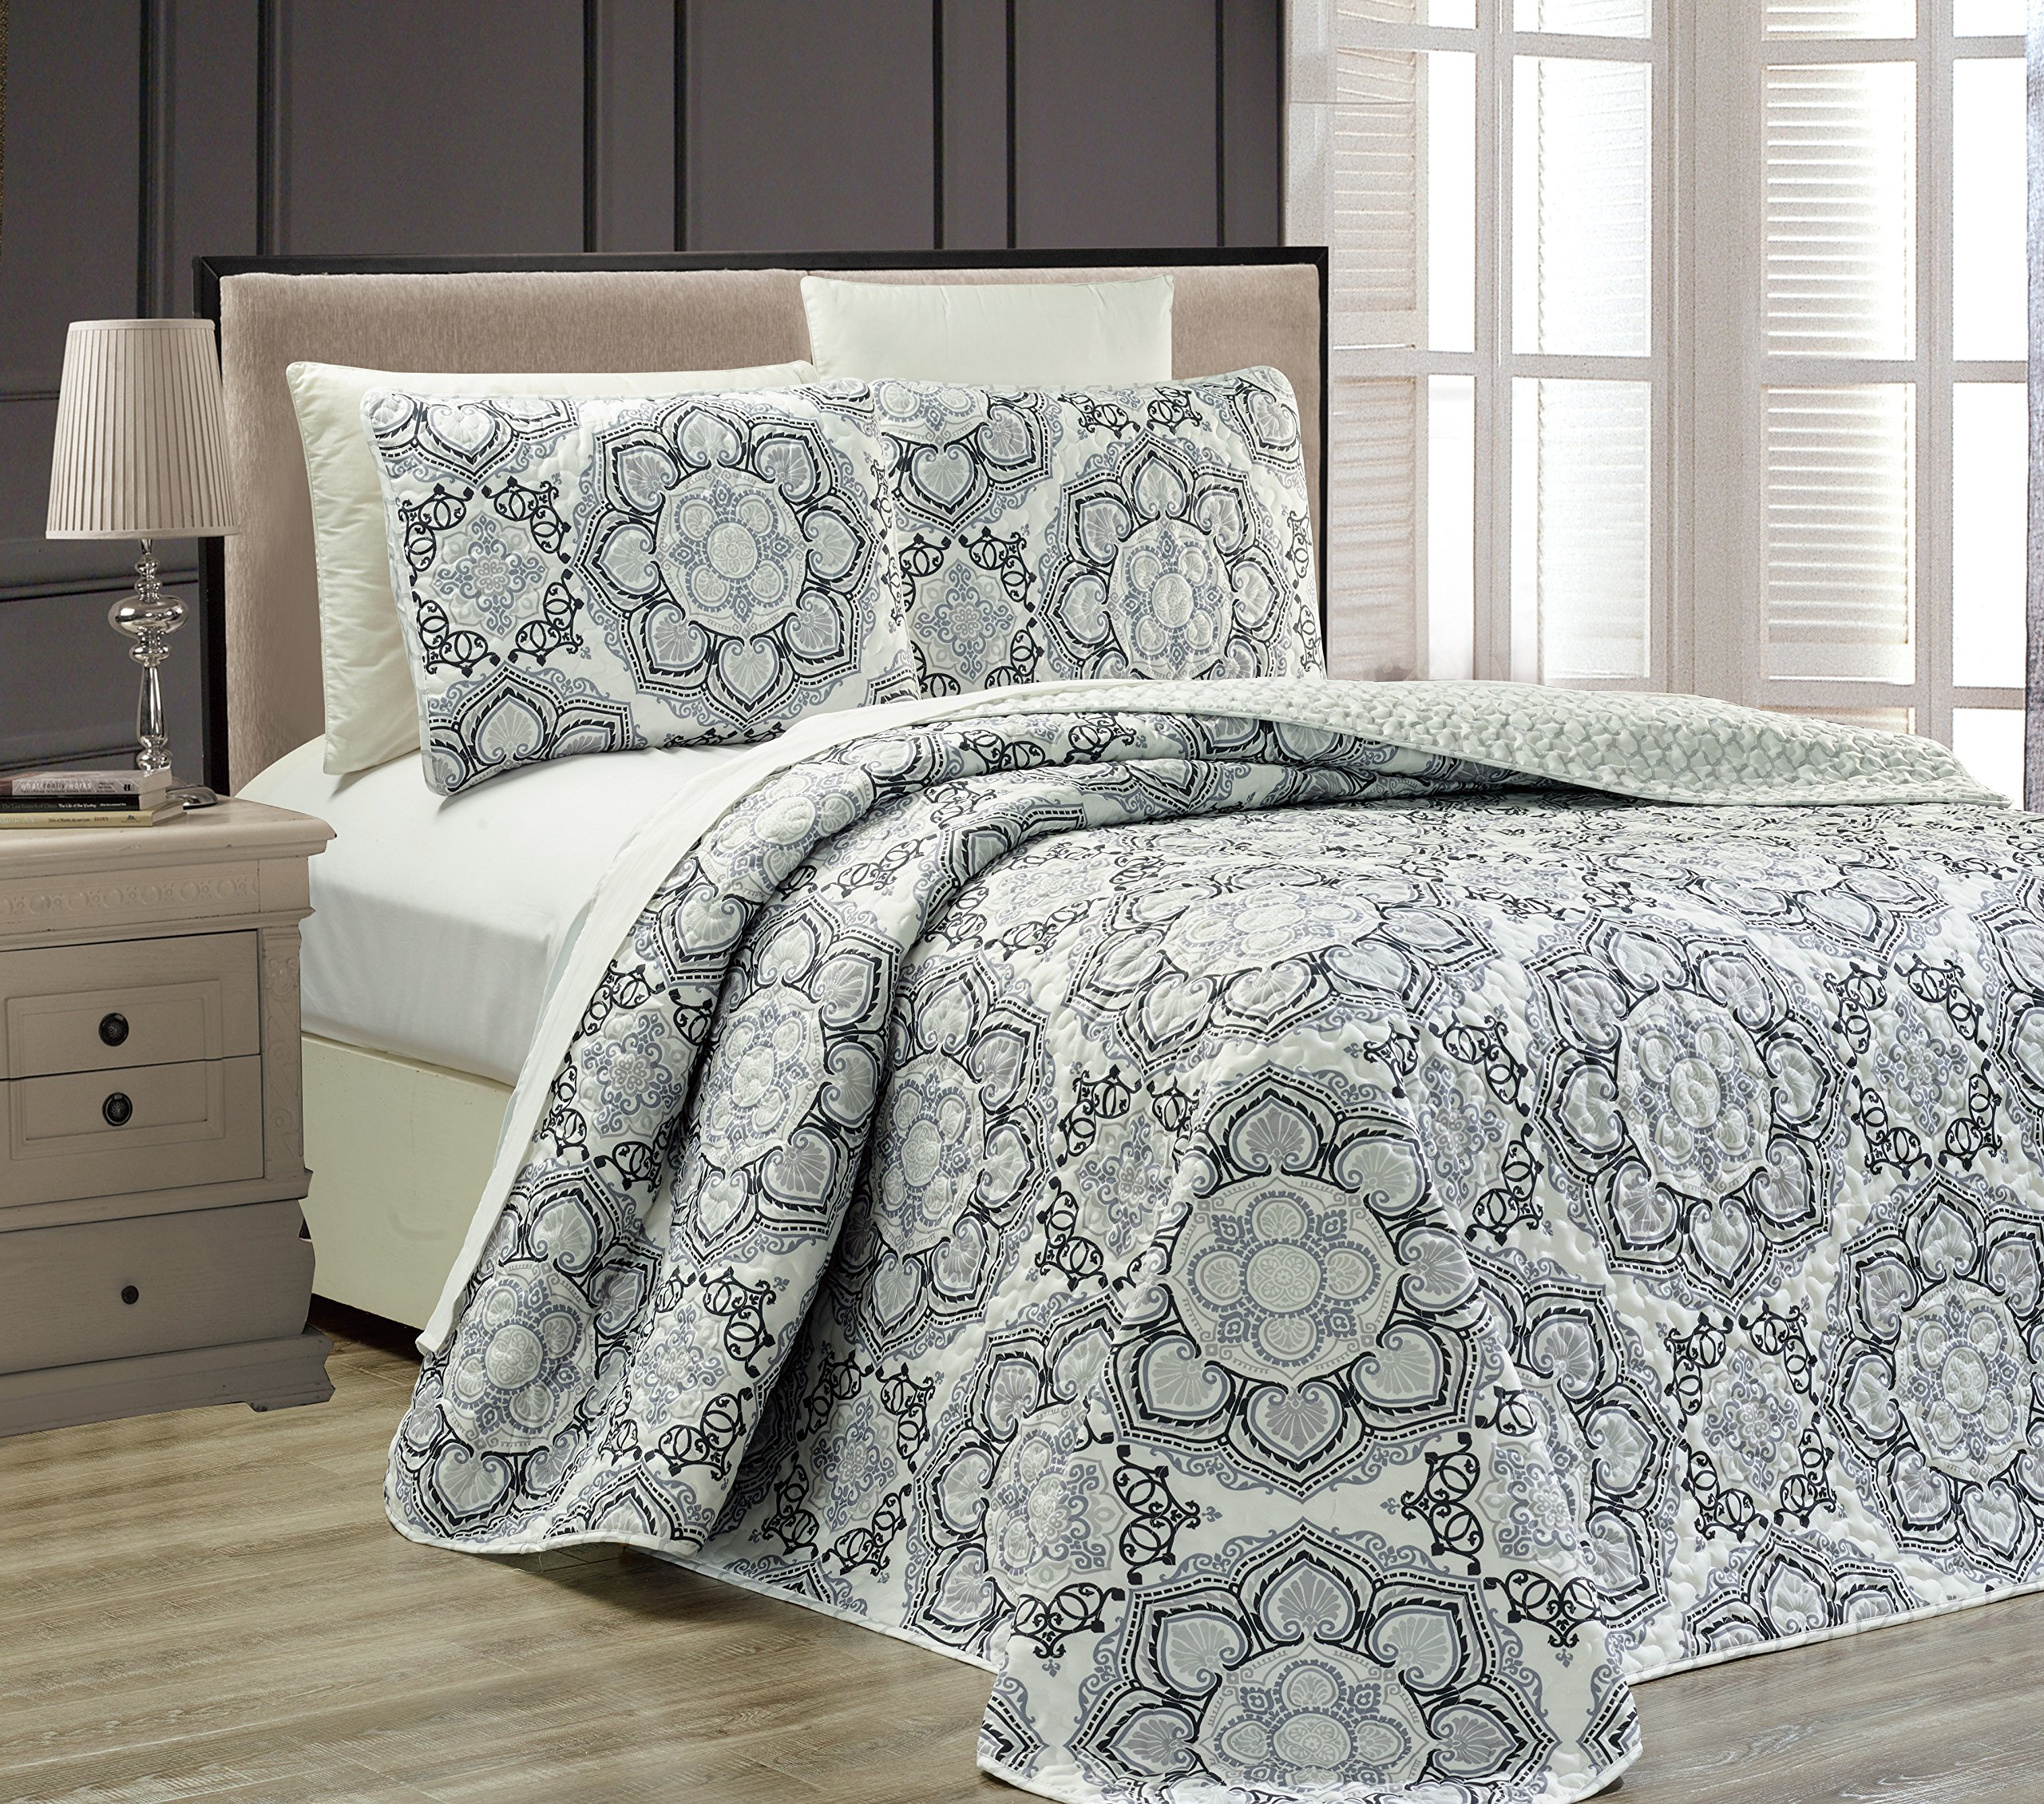 Fancy Collection 3 pc Bedspread Bed Cover Modern Reversible White Grey Black New #Linda Grey King/California King Over Size 118'' x 95''